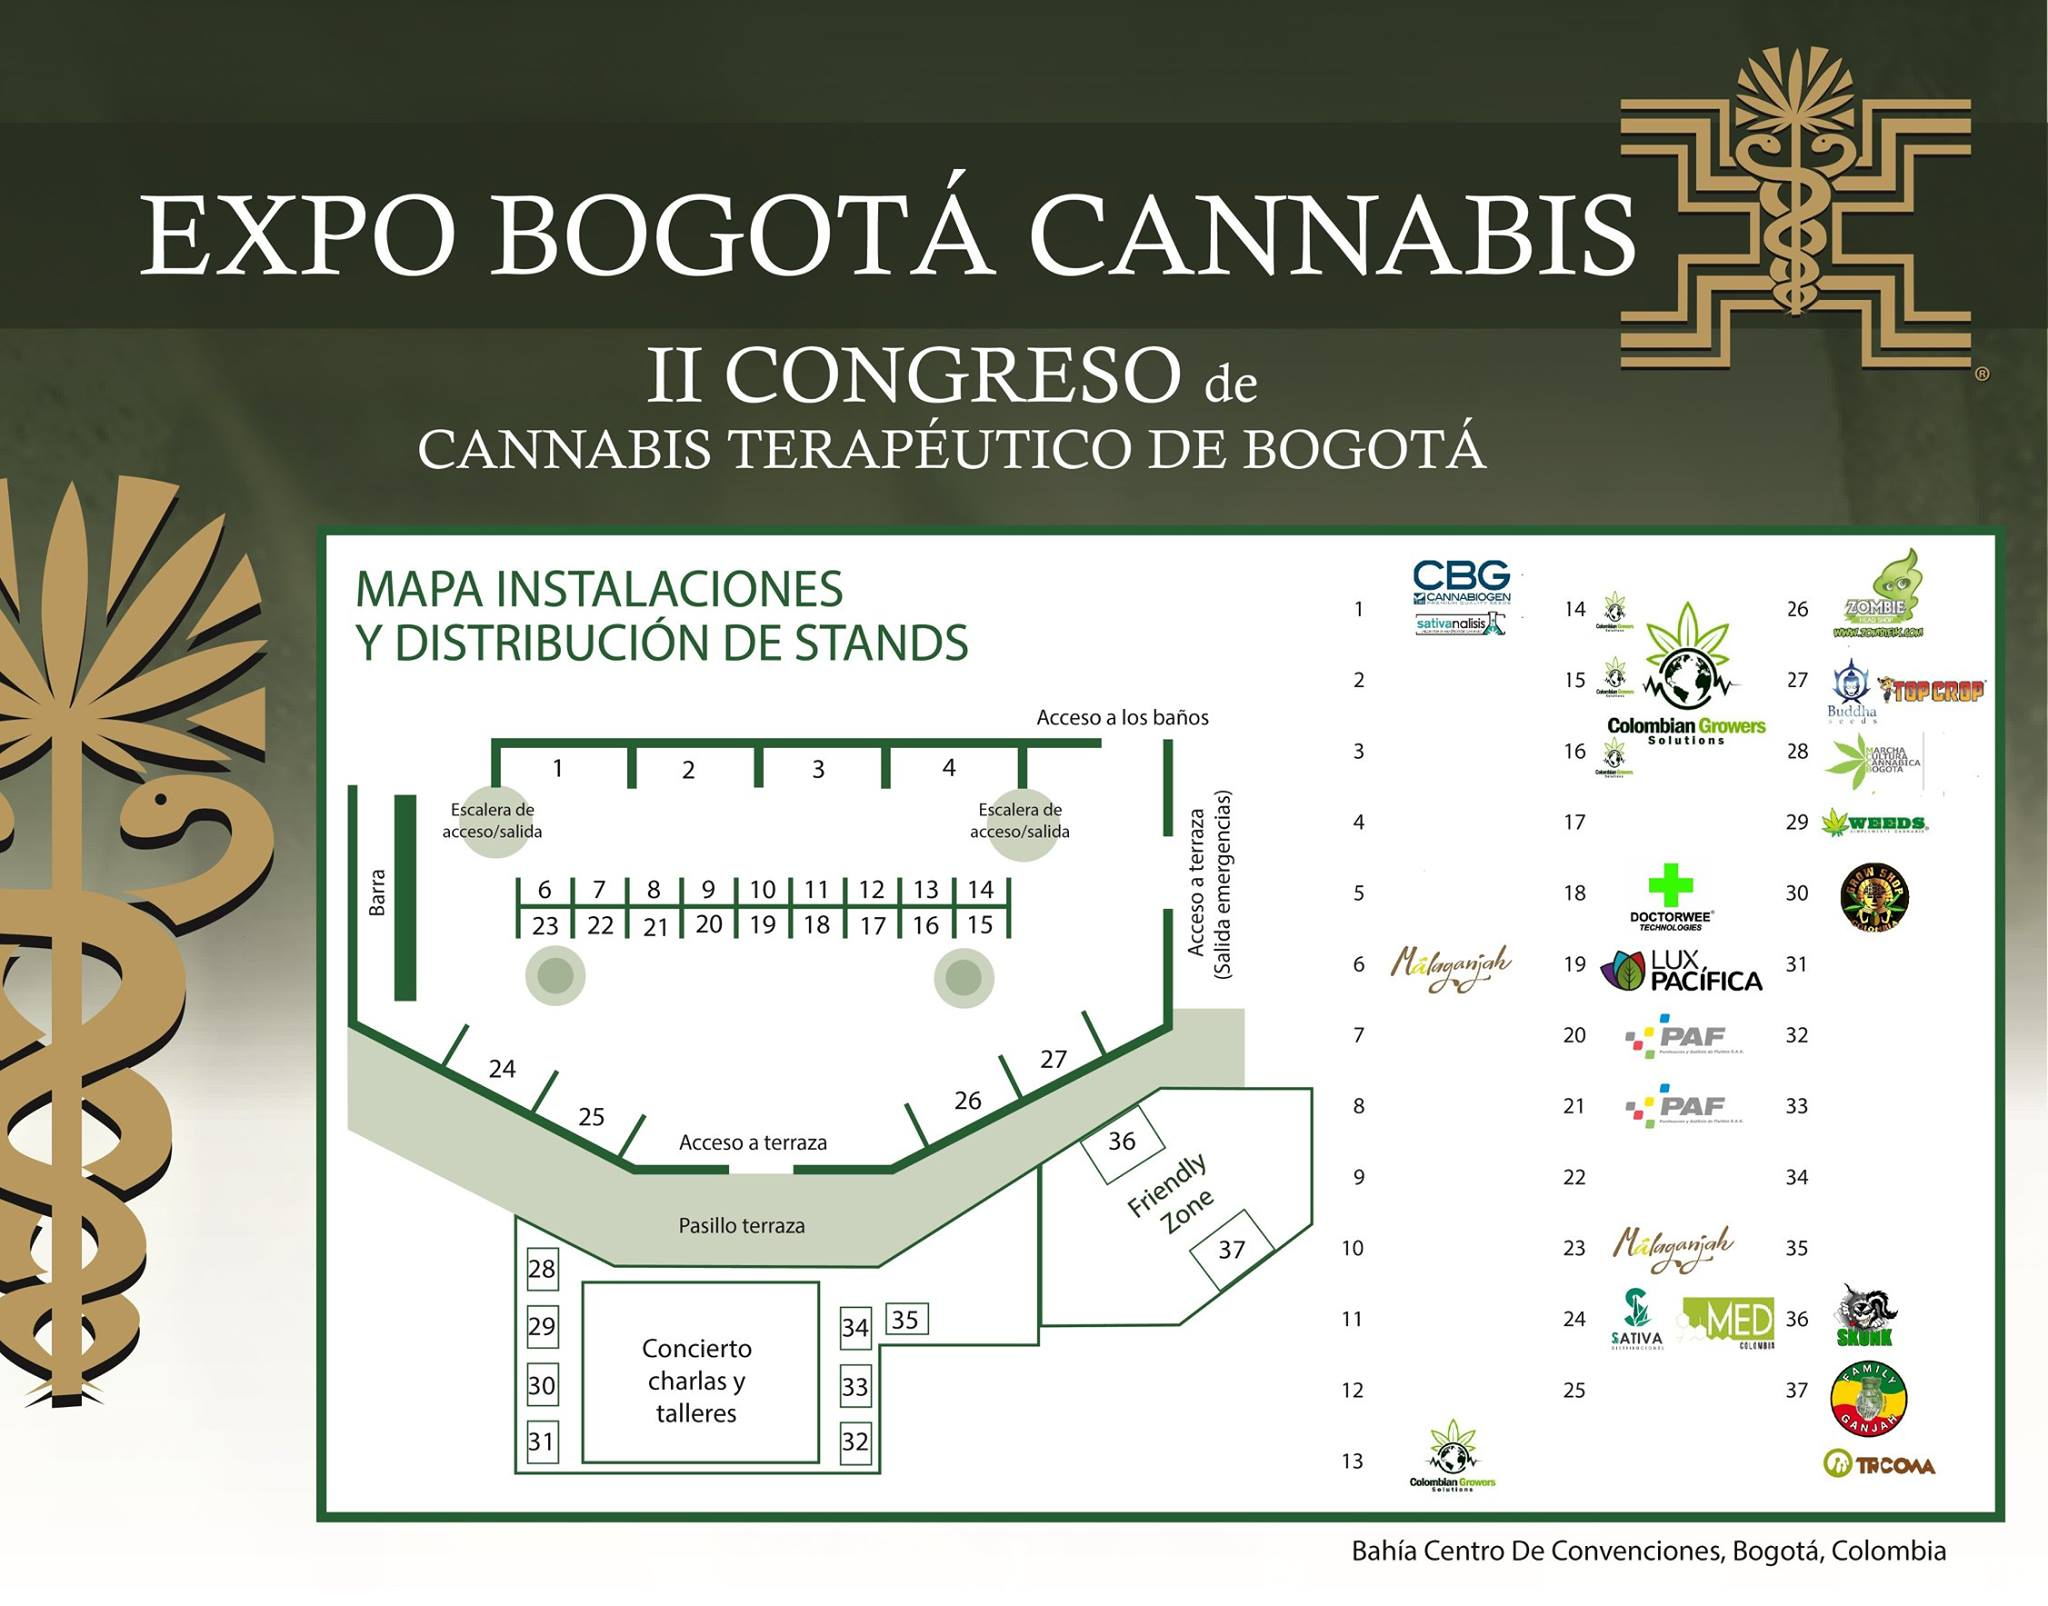 colombian growers solutions